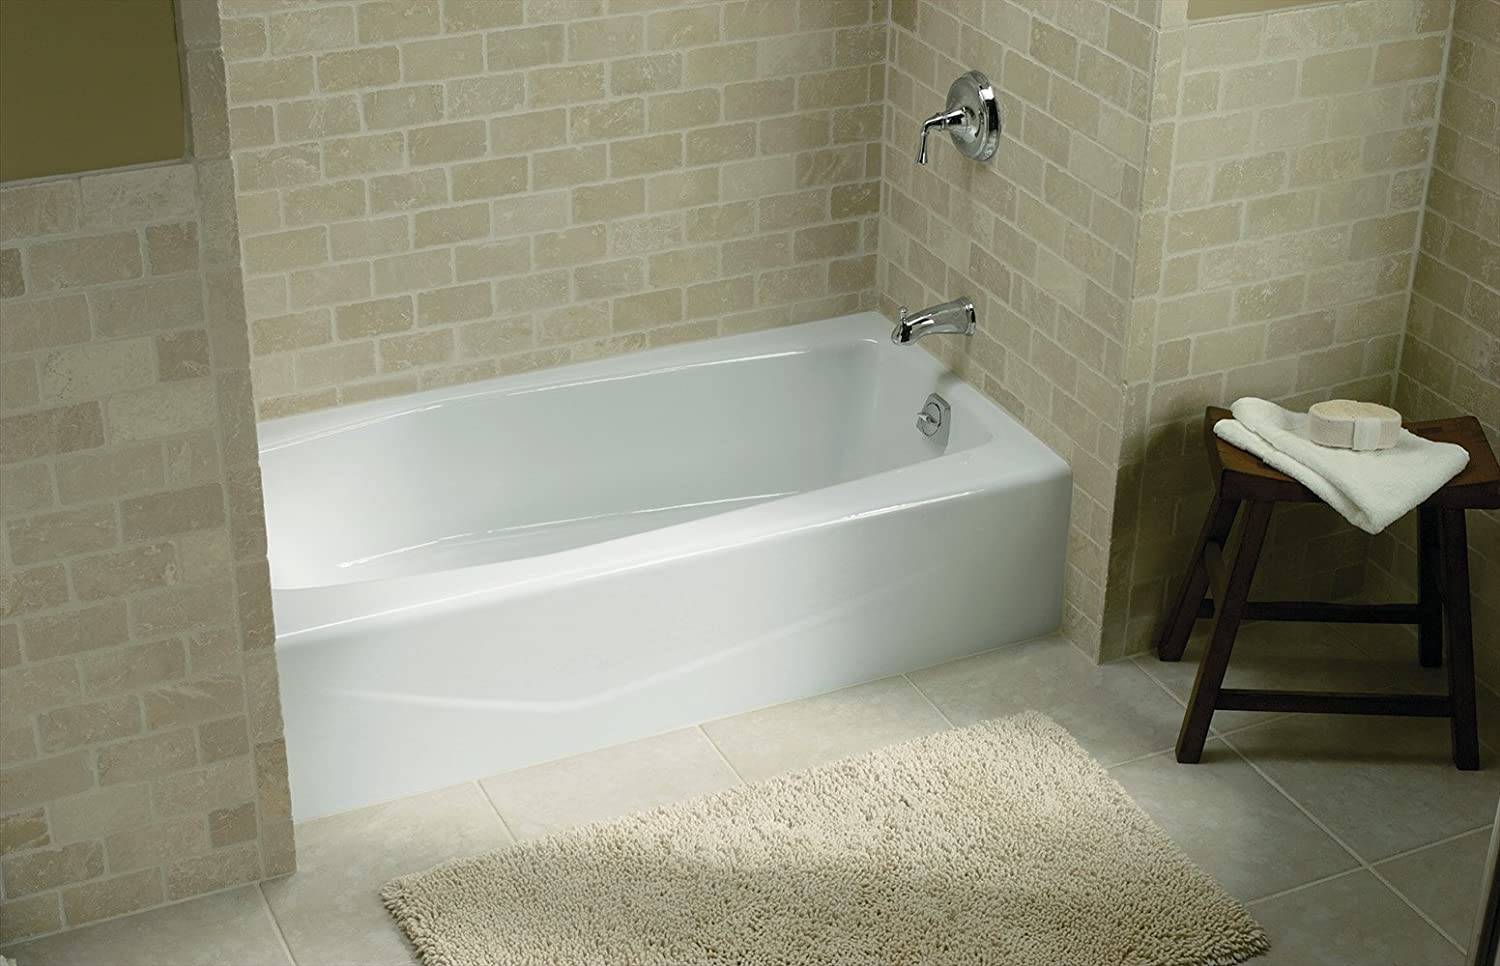 kohler k7160 villager bath with righthand drain white bathtubs amazoncom - Kohler Bathtubs